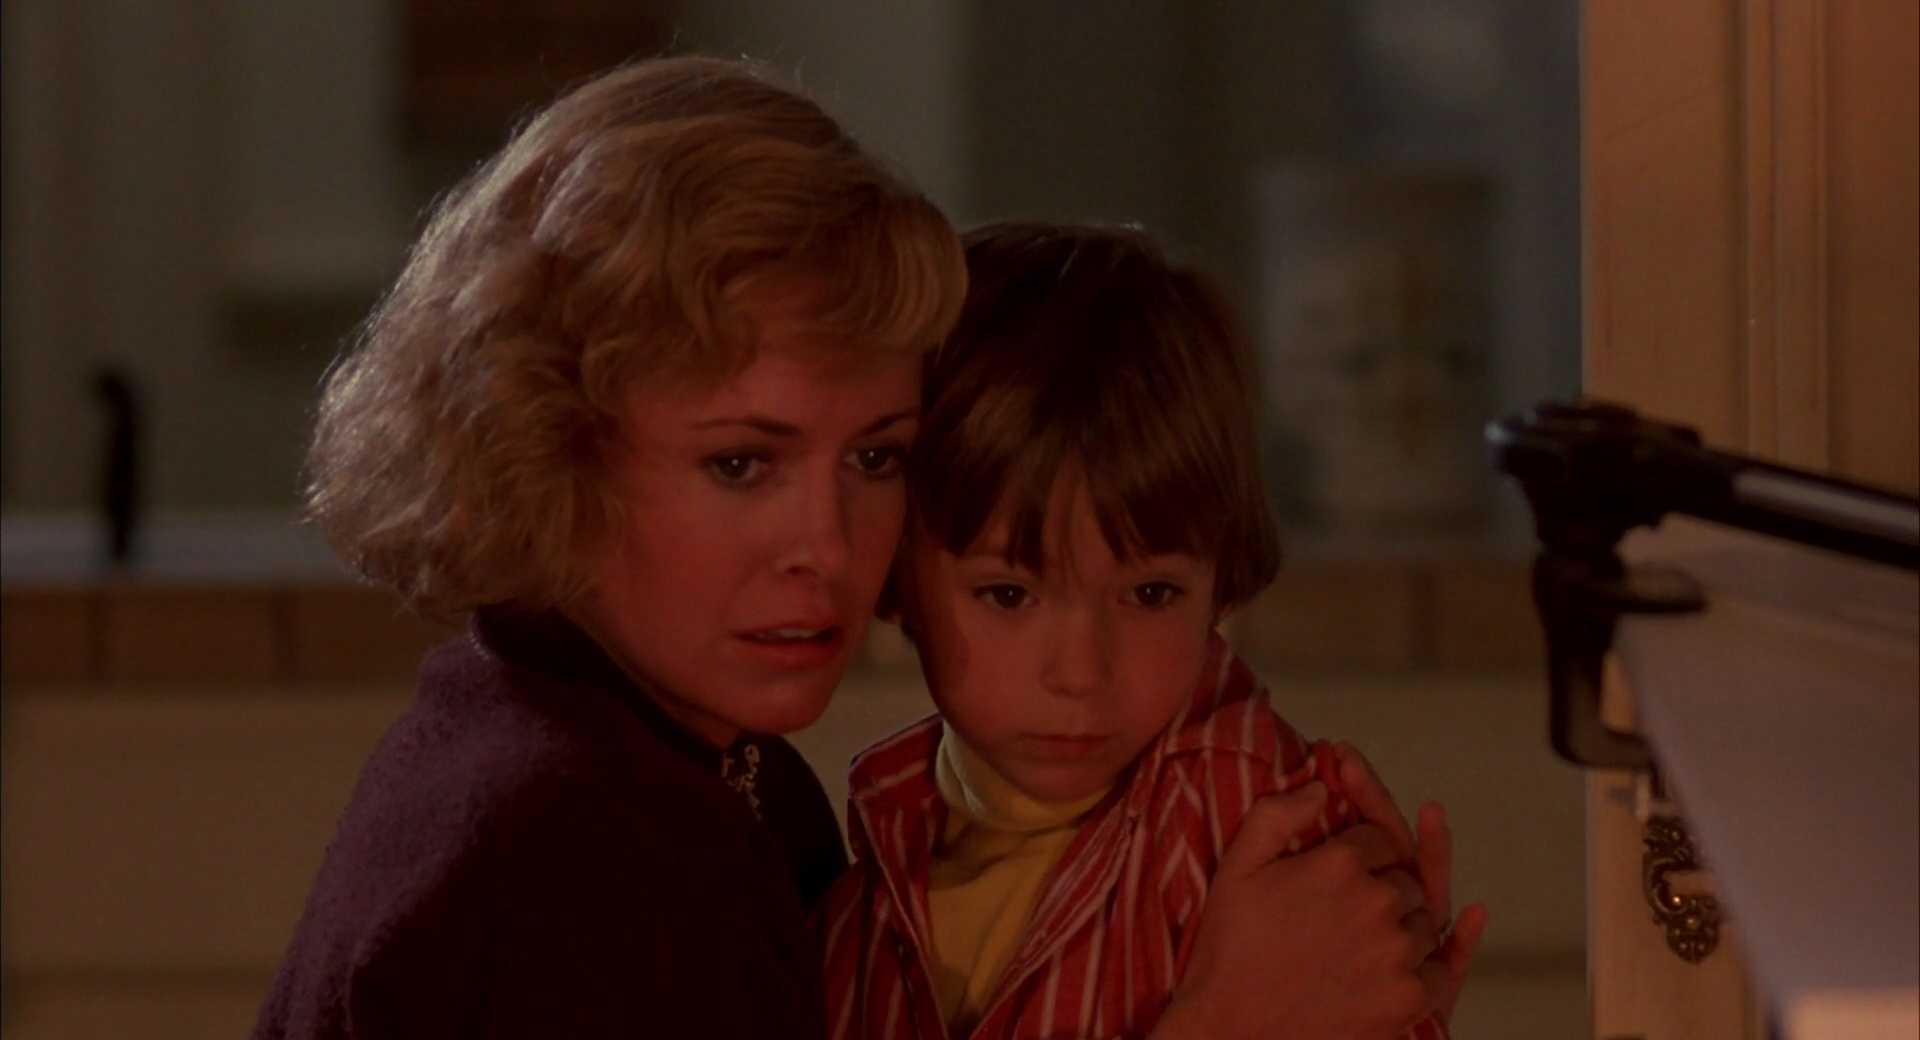 Catherine-Hicks-Childs-Play-Son